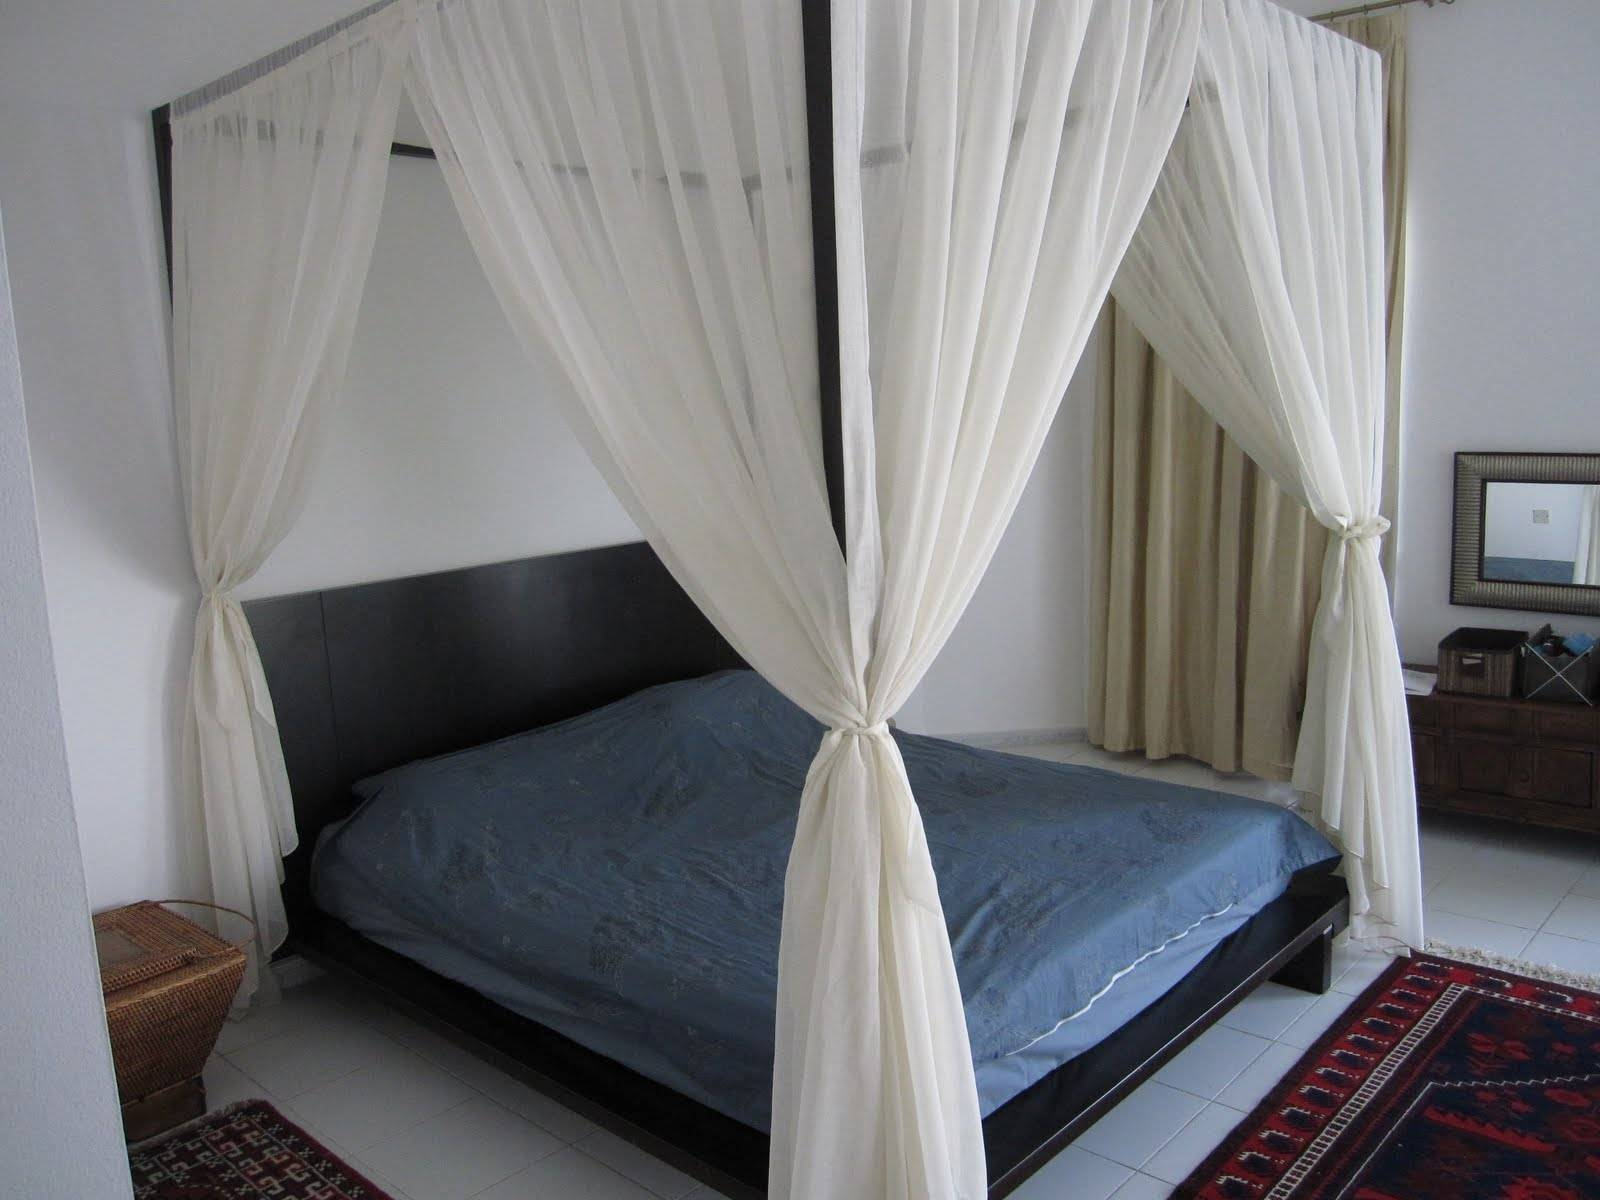 - Canopy Bed Curtains Comfortable Sleep Best Beds Queen - Cute Homes